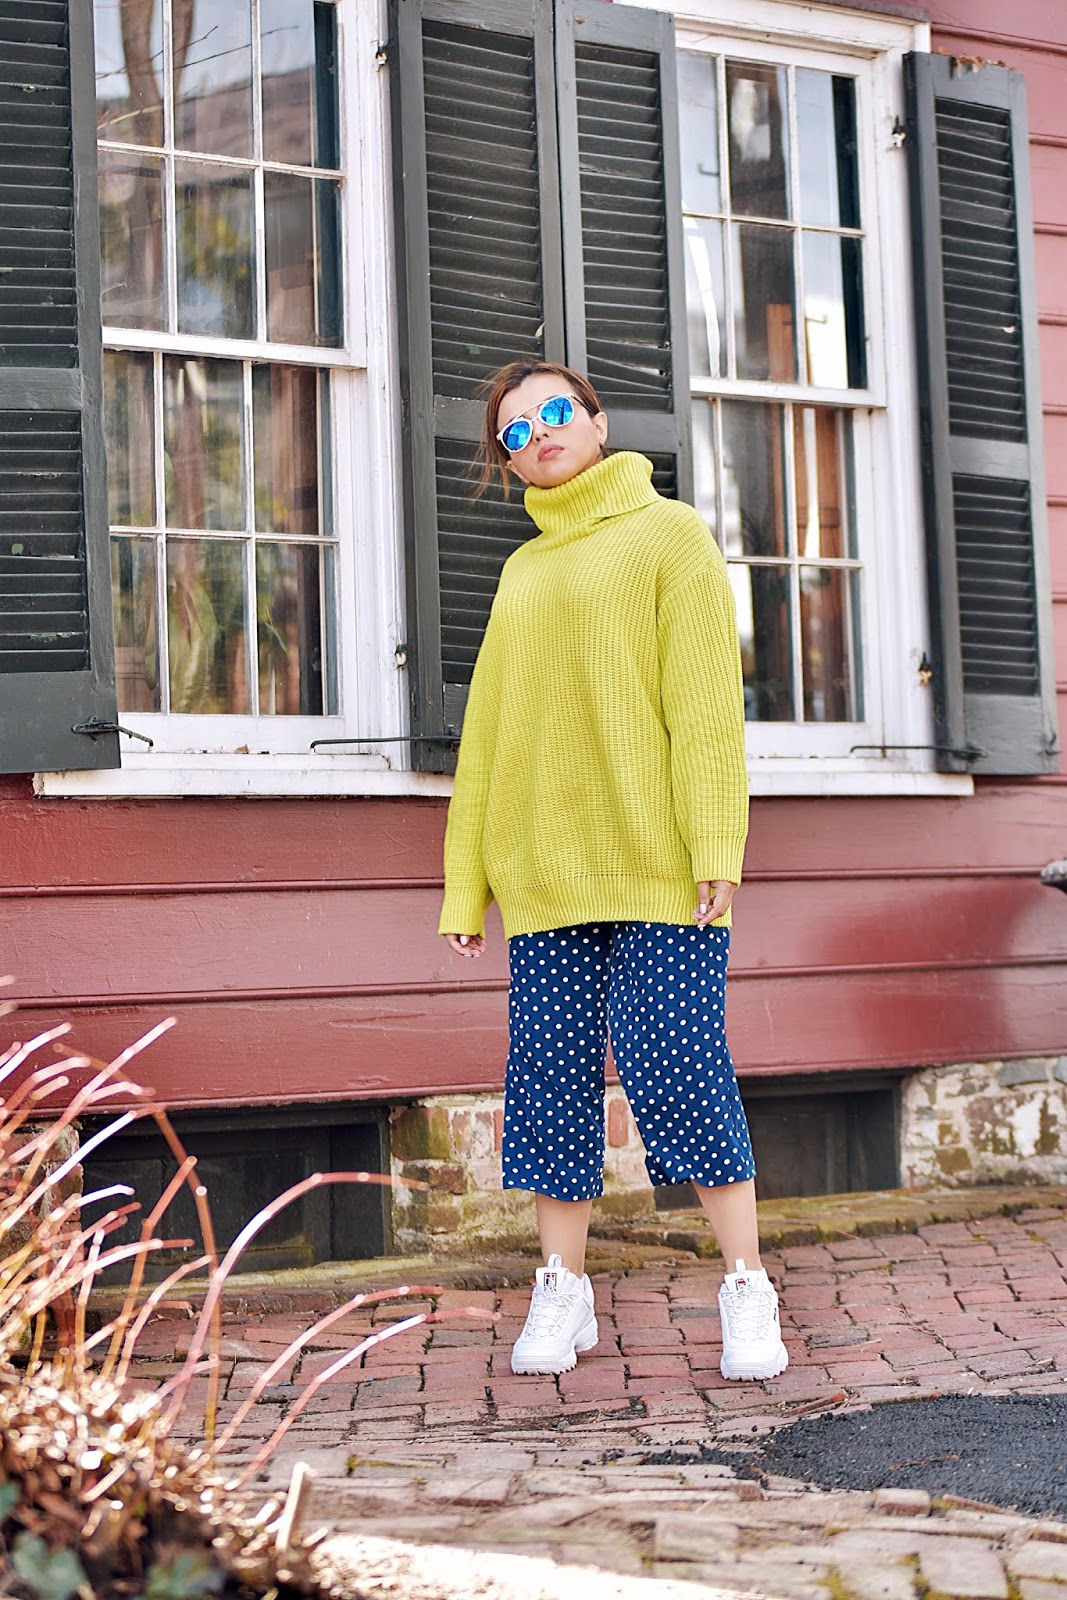 Neon Lime Knitted Oversized Polo Neck Jumper by Mari Estilo-dcblogger-emmeluxefinery-fashionblogger-armandhugon-streetstyle-fashionista-it girl-youtuber-modaelsalvador-fila shoes-polka dots pants-polka dots-tendencia neon-